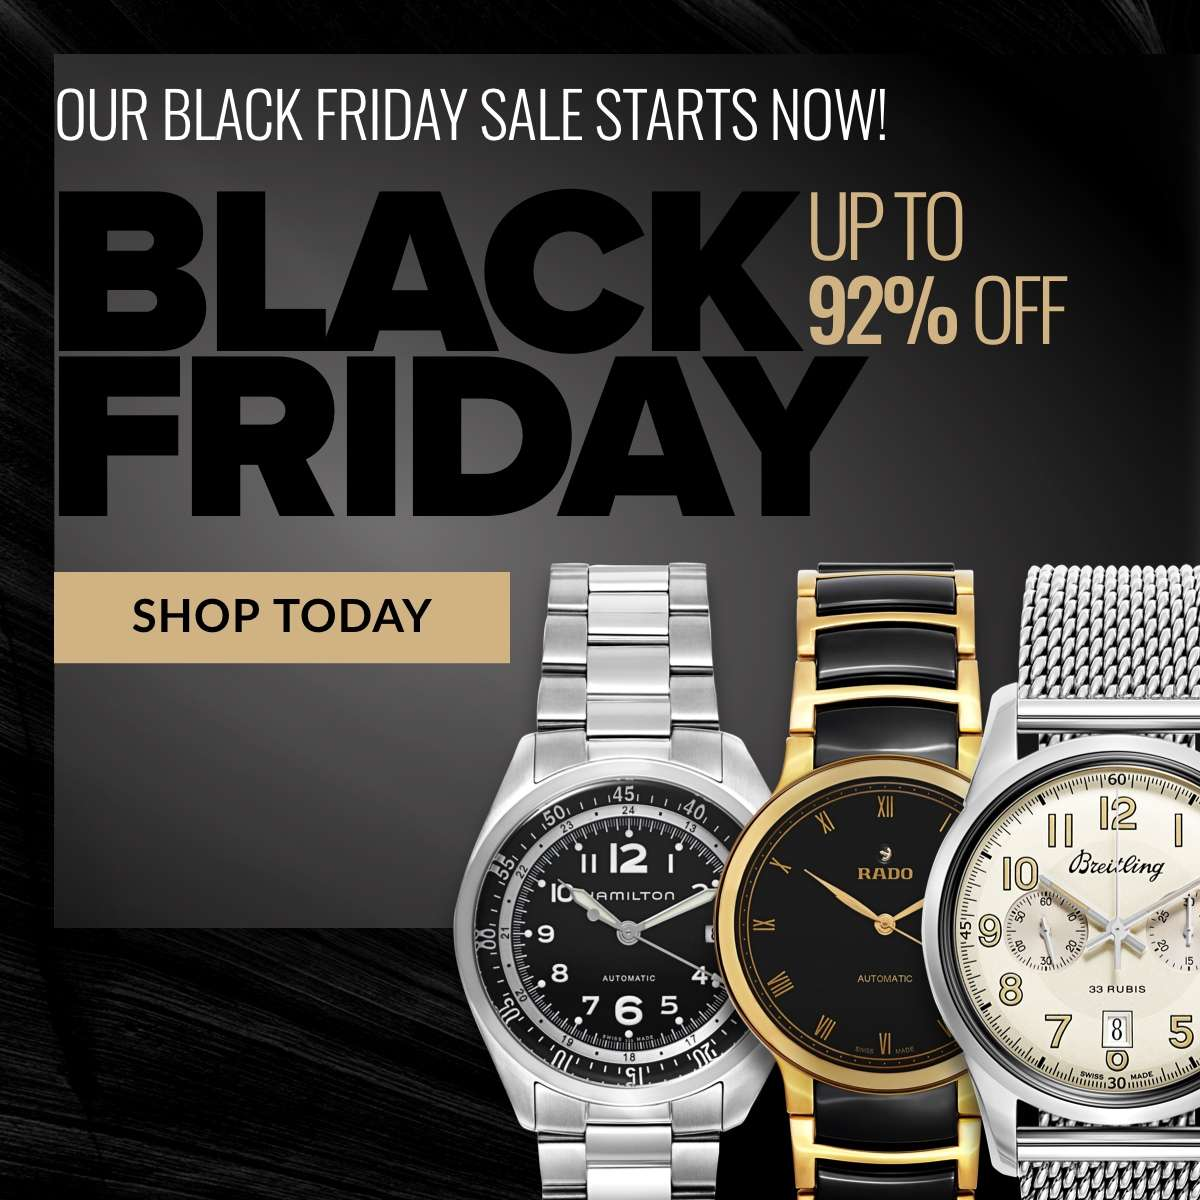 Our Black Friday sale starts NOW! Save up to 92% off  SHOP TODAY